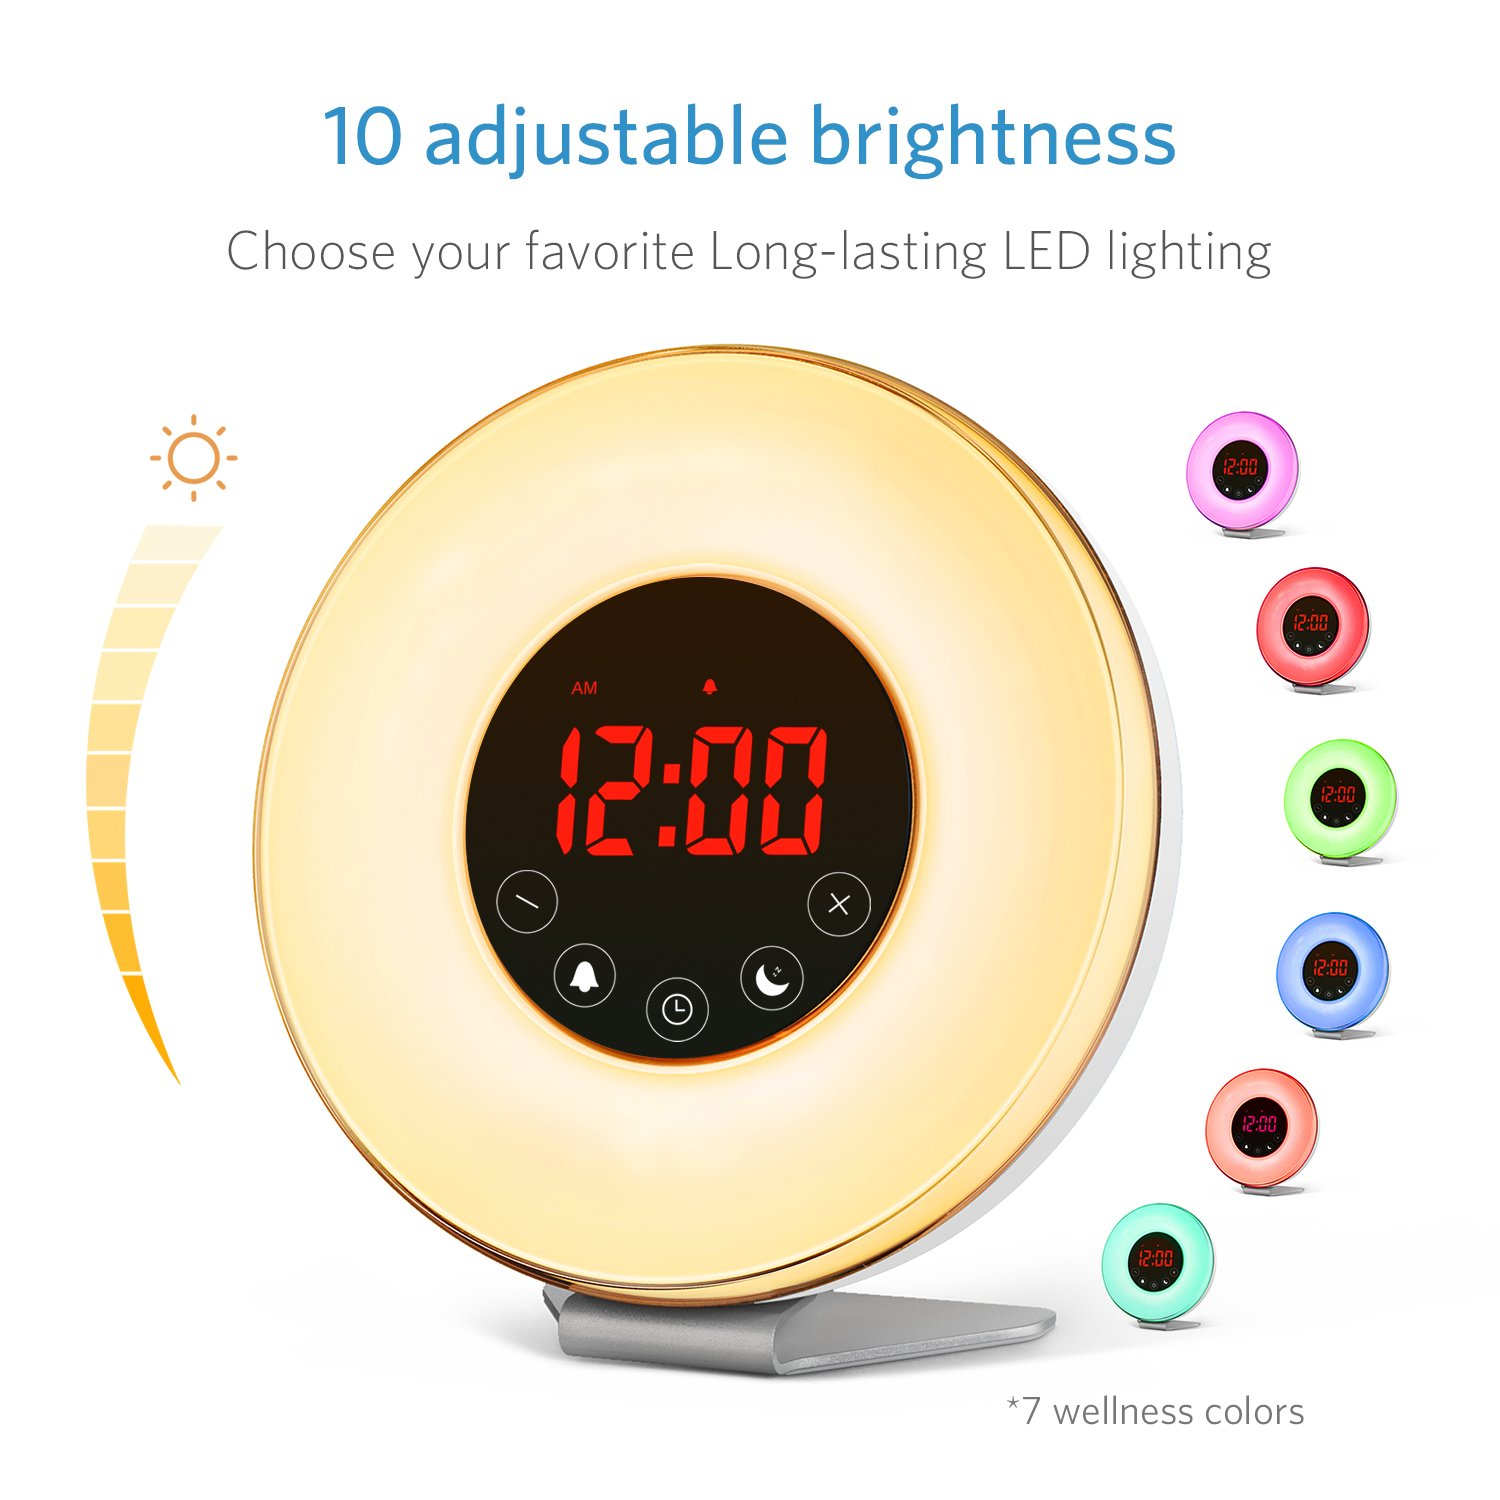 Sunrise Alarm Clock, Digital LED Wake Up Light Clock by Vodool - 7 Color Switchs 10 Brightness Levels and FM Radio, Multiple 6 Nature Sounds with 15/30/60 minutes Sunset Simulation for Bedrooms